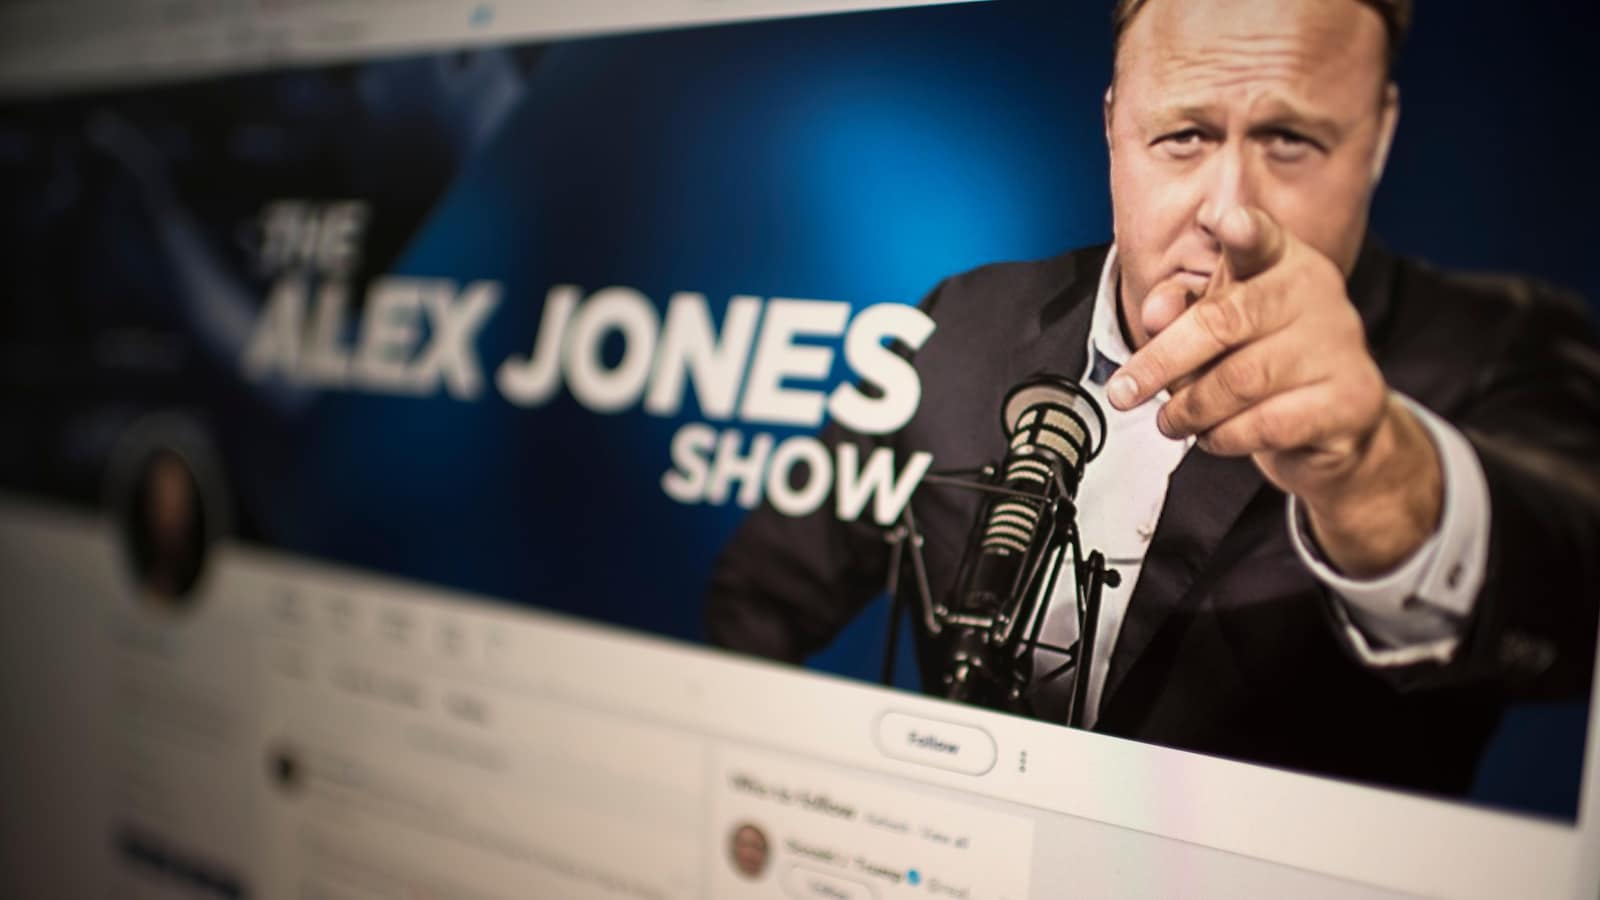 La photo montre le compte Twitter d'Alex Jones.